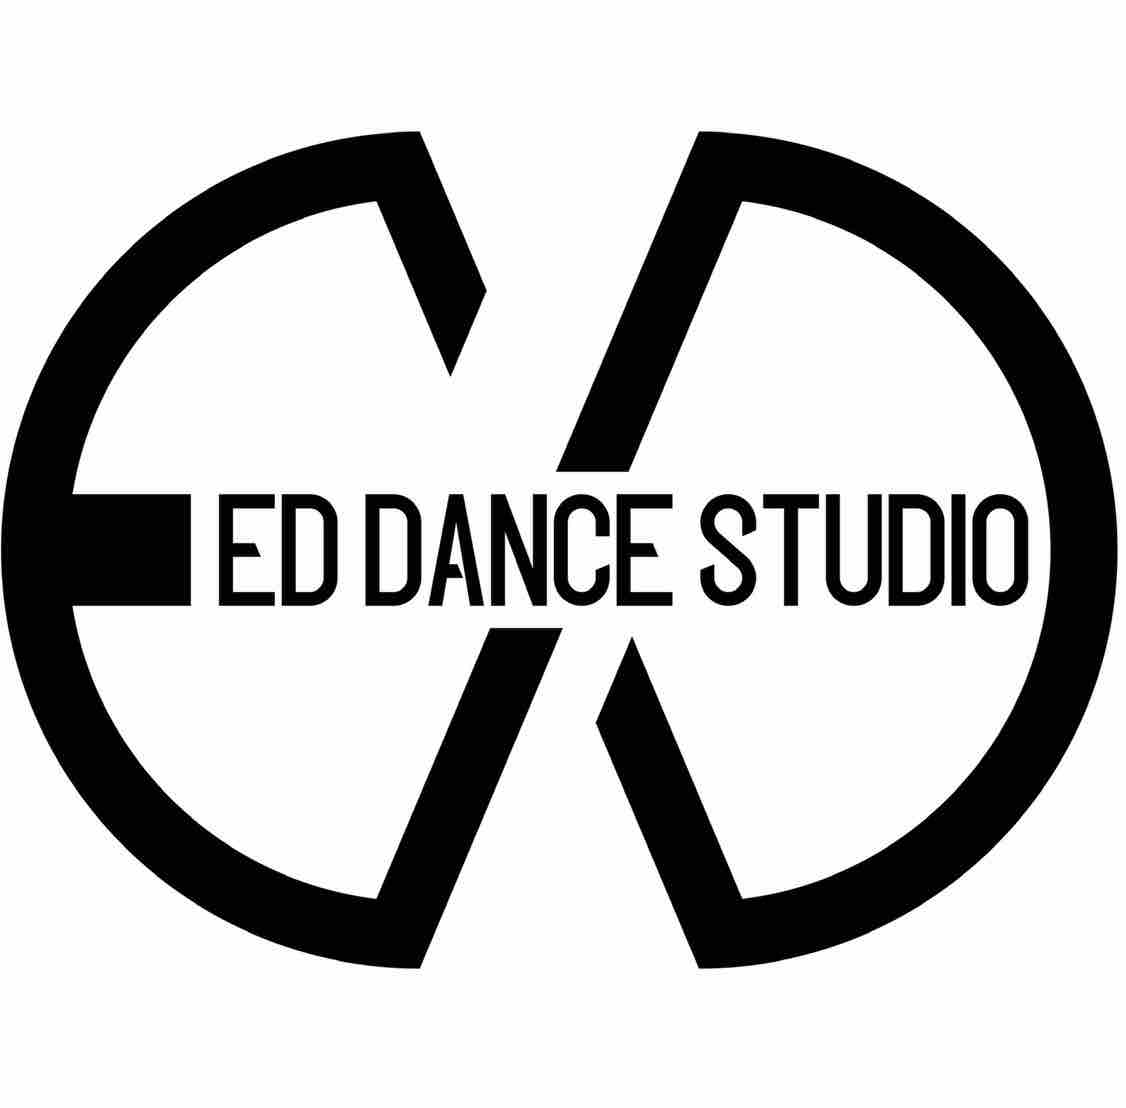 EDDanceStudio